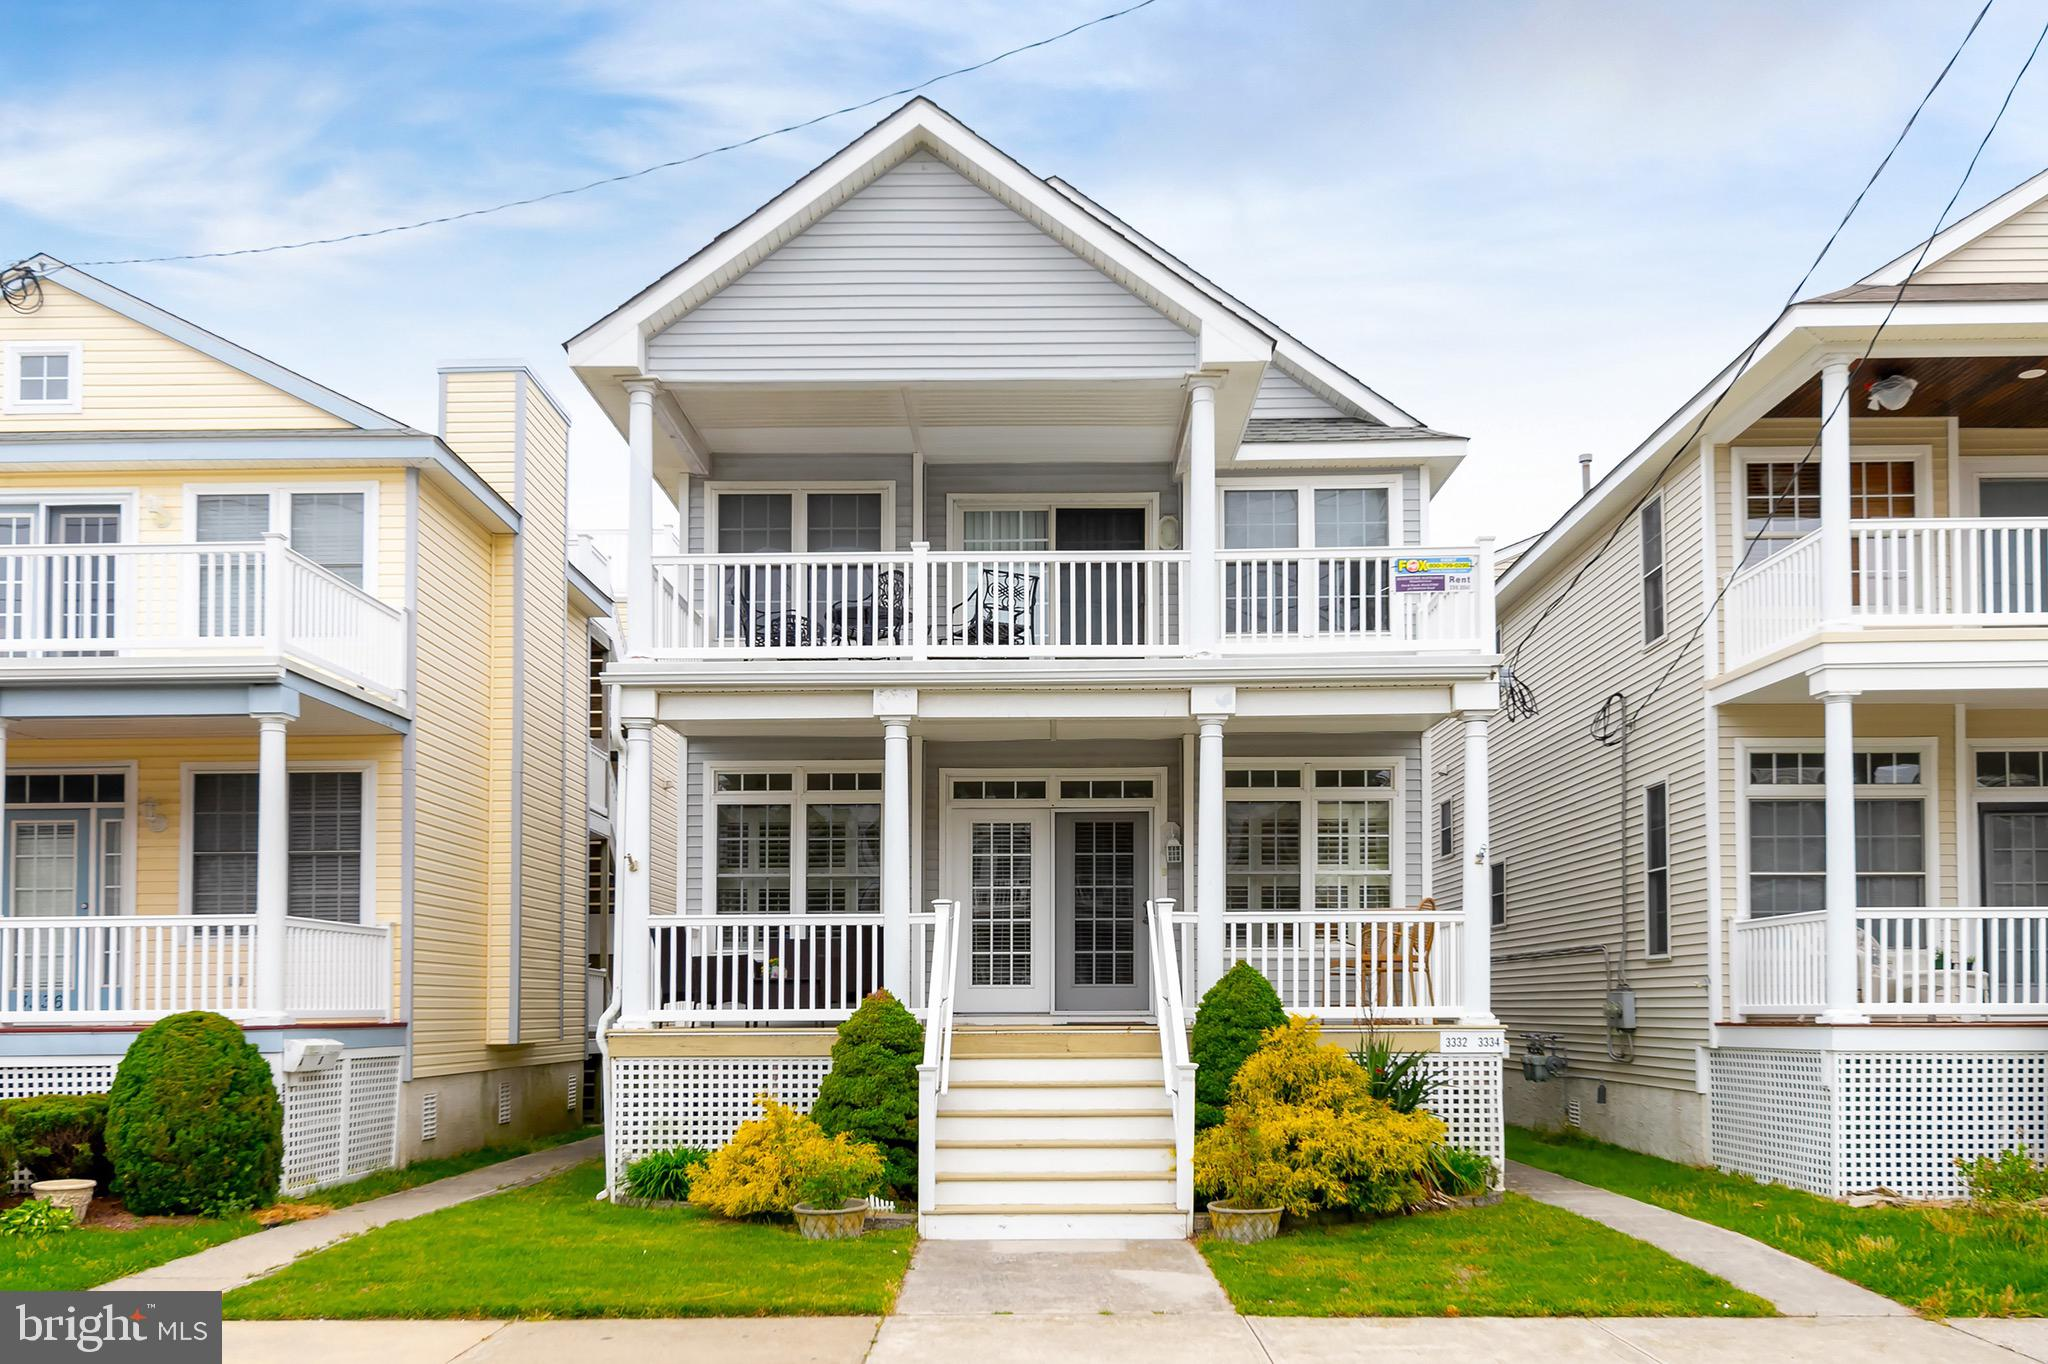 3332 ASBURY AVENUE, OCEAN CITY, NJ 08226